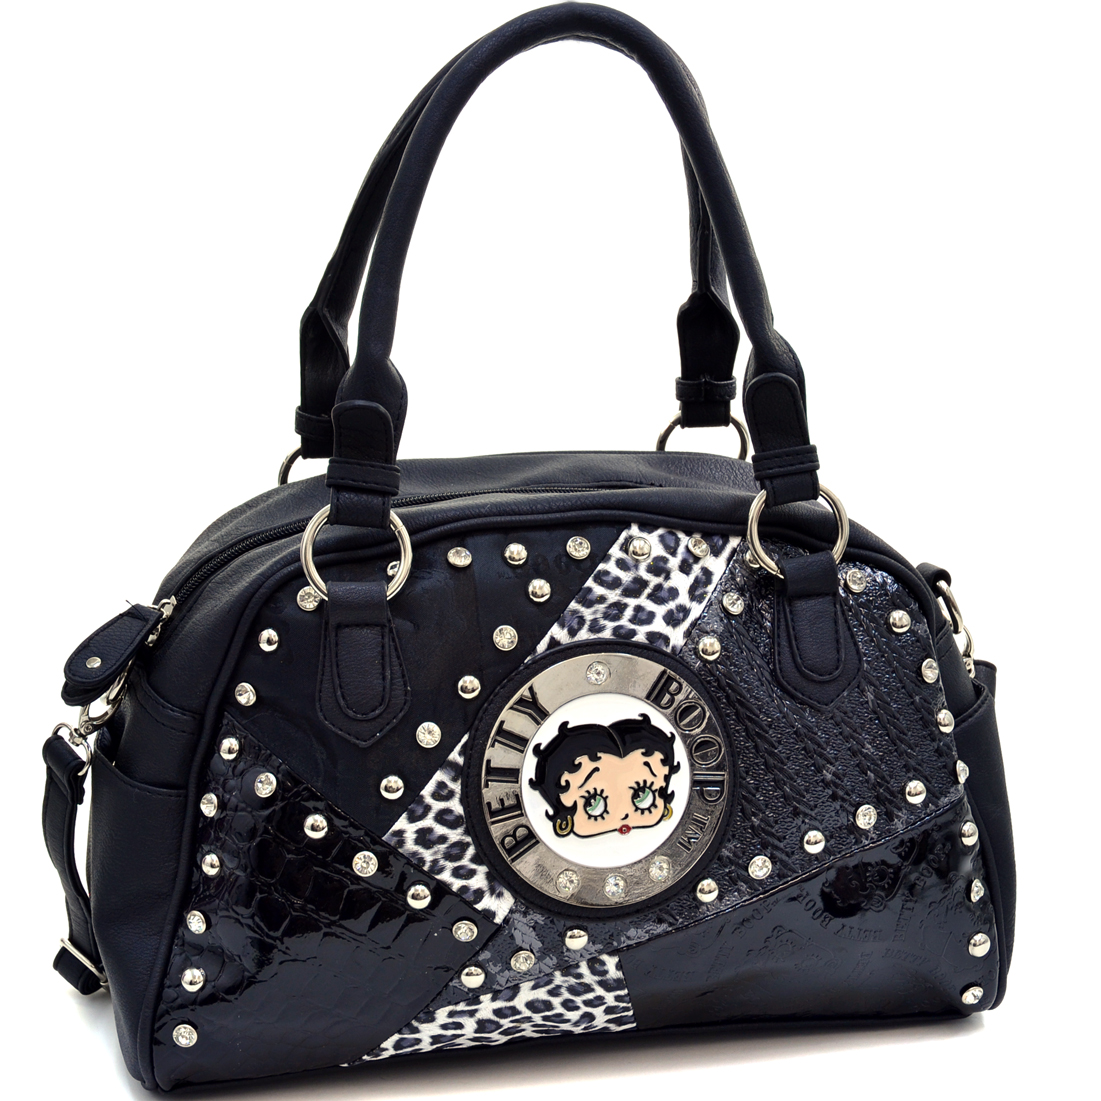 Betty Boop® Multi-Patch Boop-o-Mania Satchel